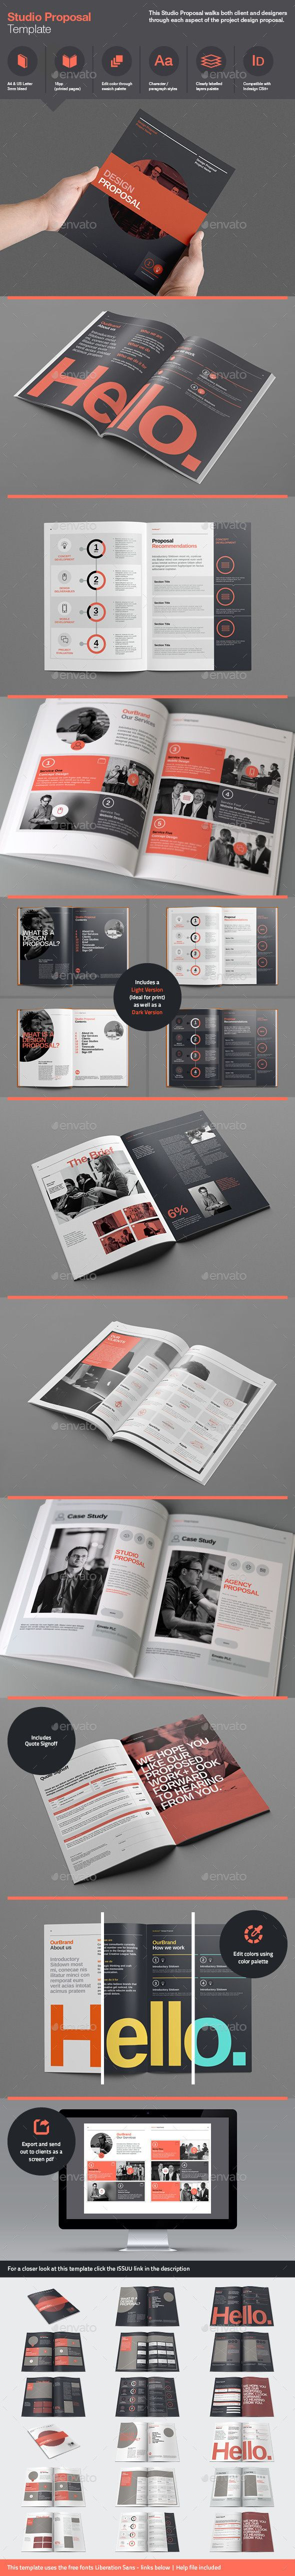 Graphic design proposal template